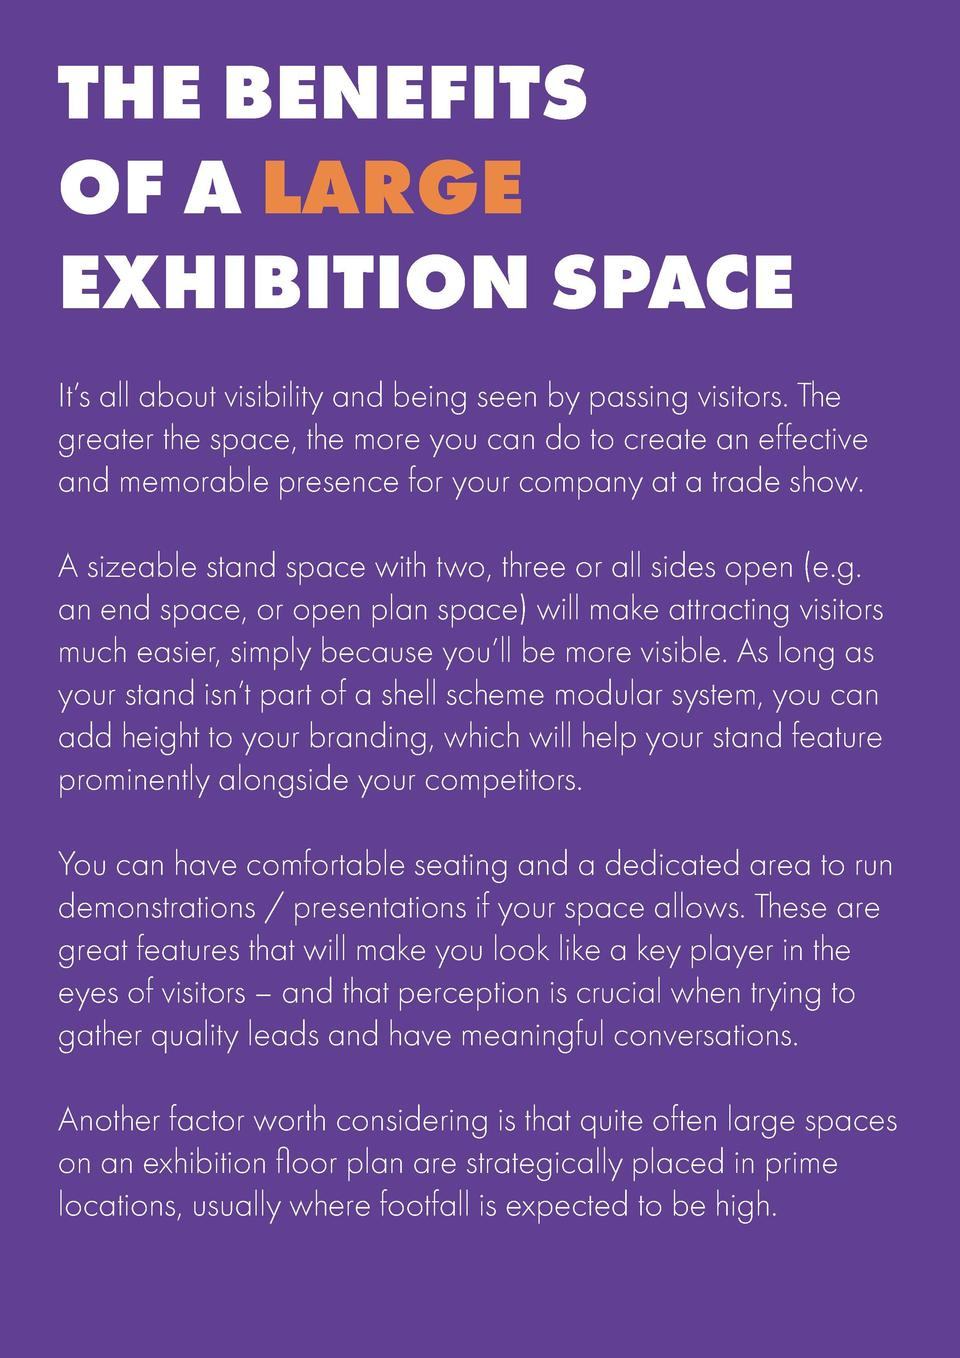 INTRODUCTION  THE BENEFITS OF A LARGE EXHIBITION SPACE  Exhibition stand spaces are usually priced per square metre, so th...